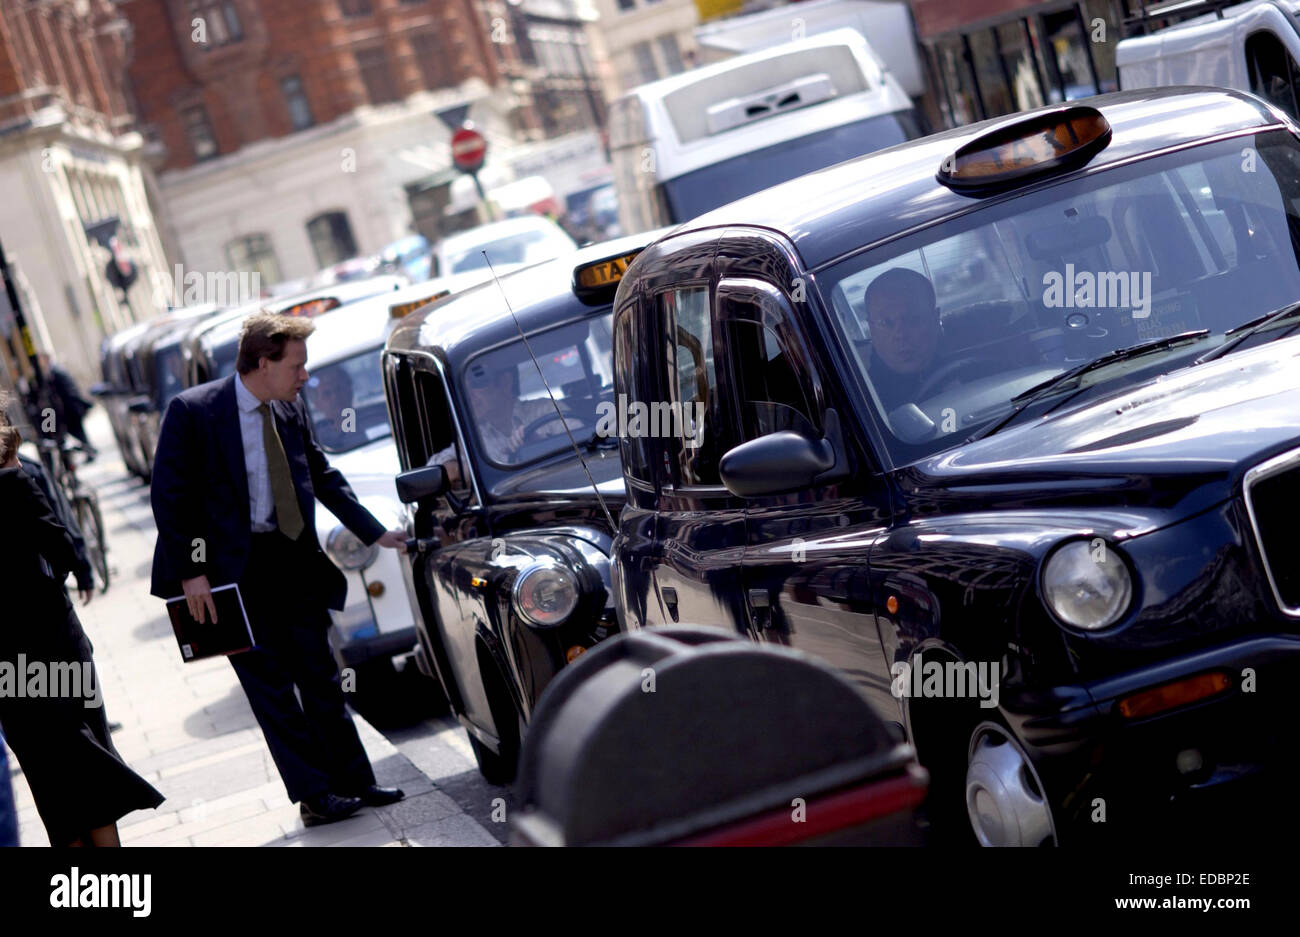 Picture shows a cue of taxis outside Liverpool Street Station, Central London. - Stock Image